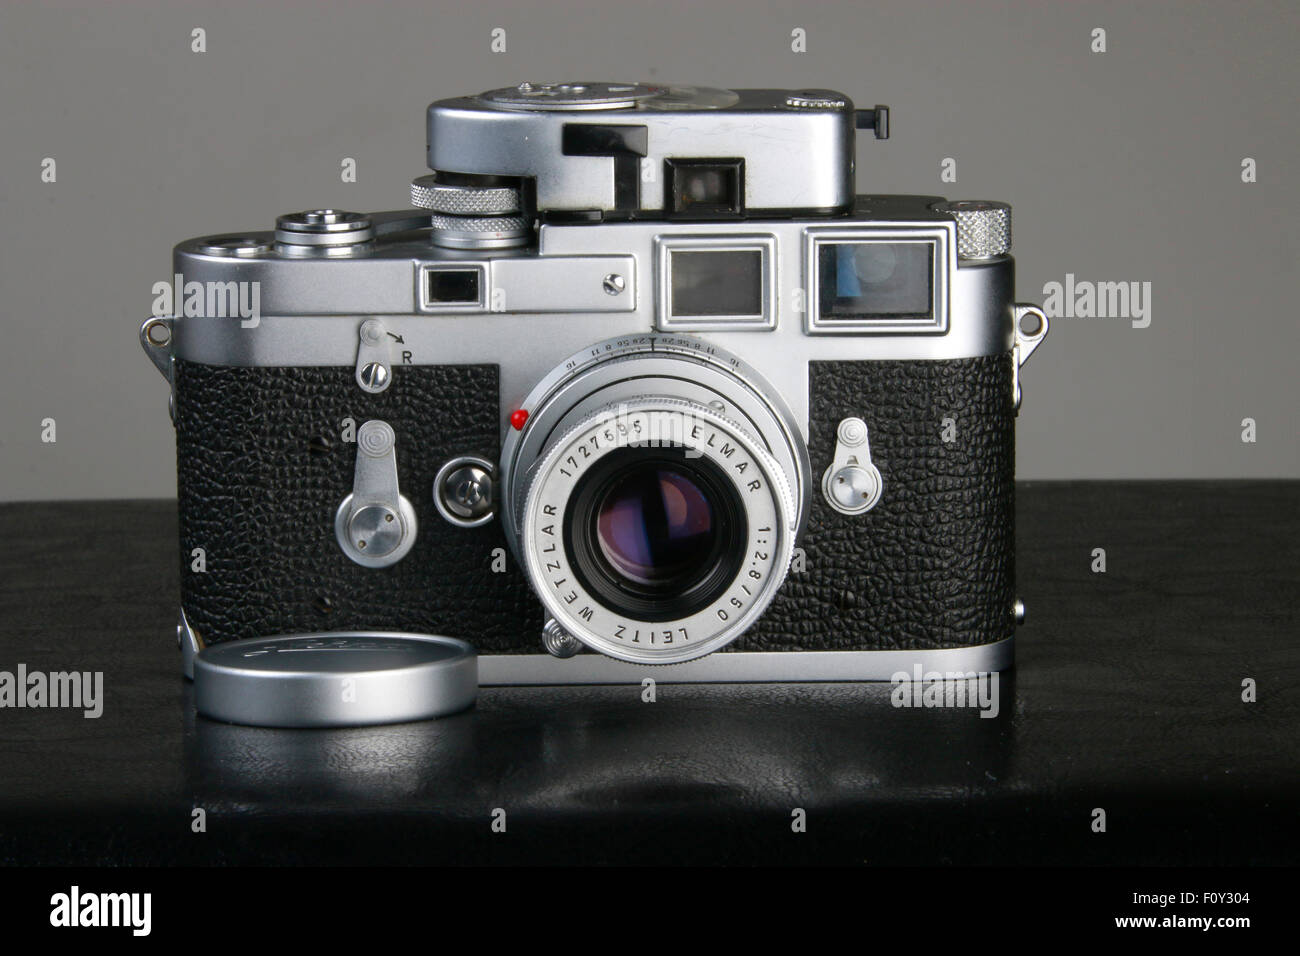 Vintage Leica M3 35mm double stroke camera in Chrome with